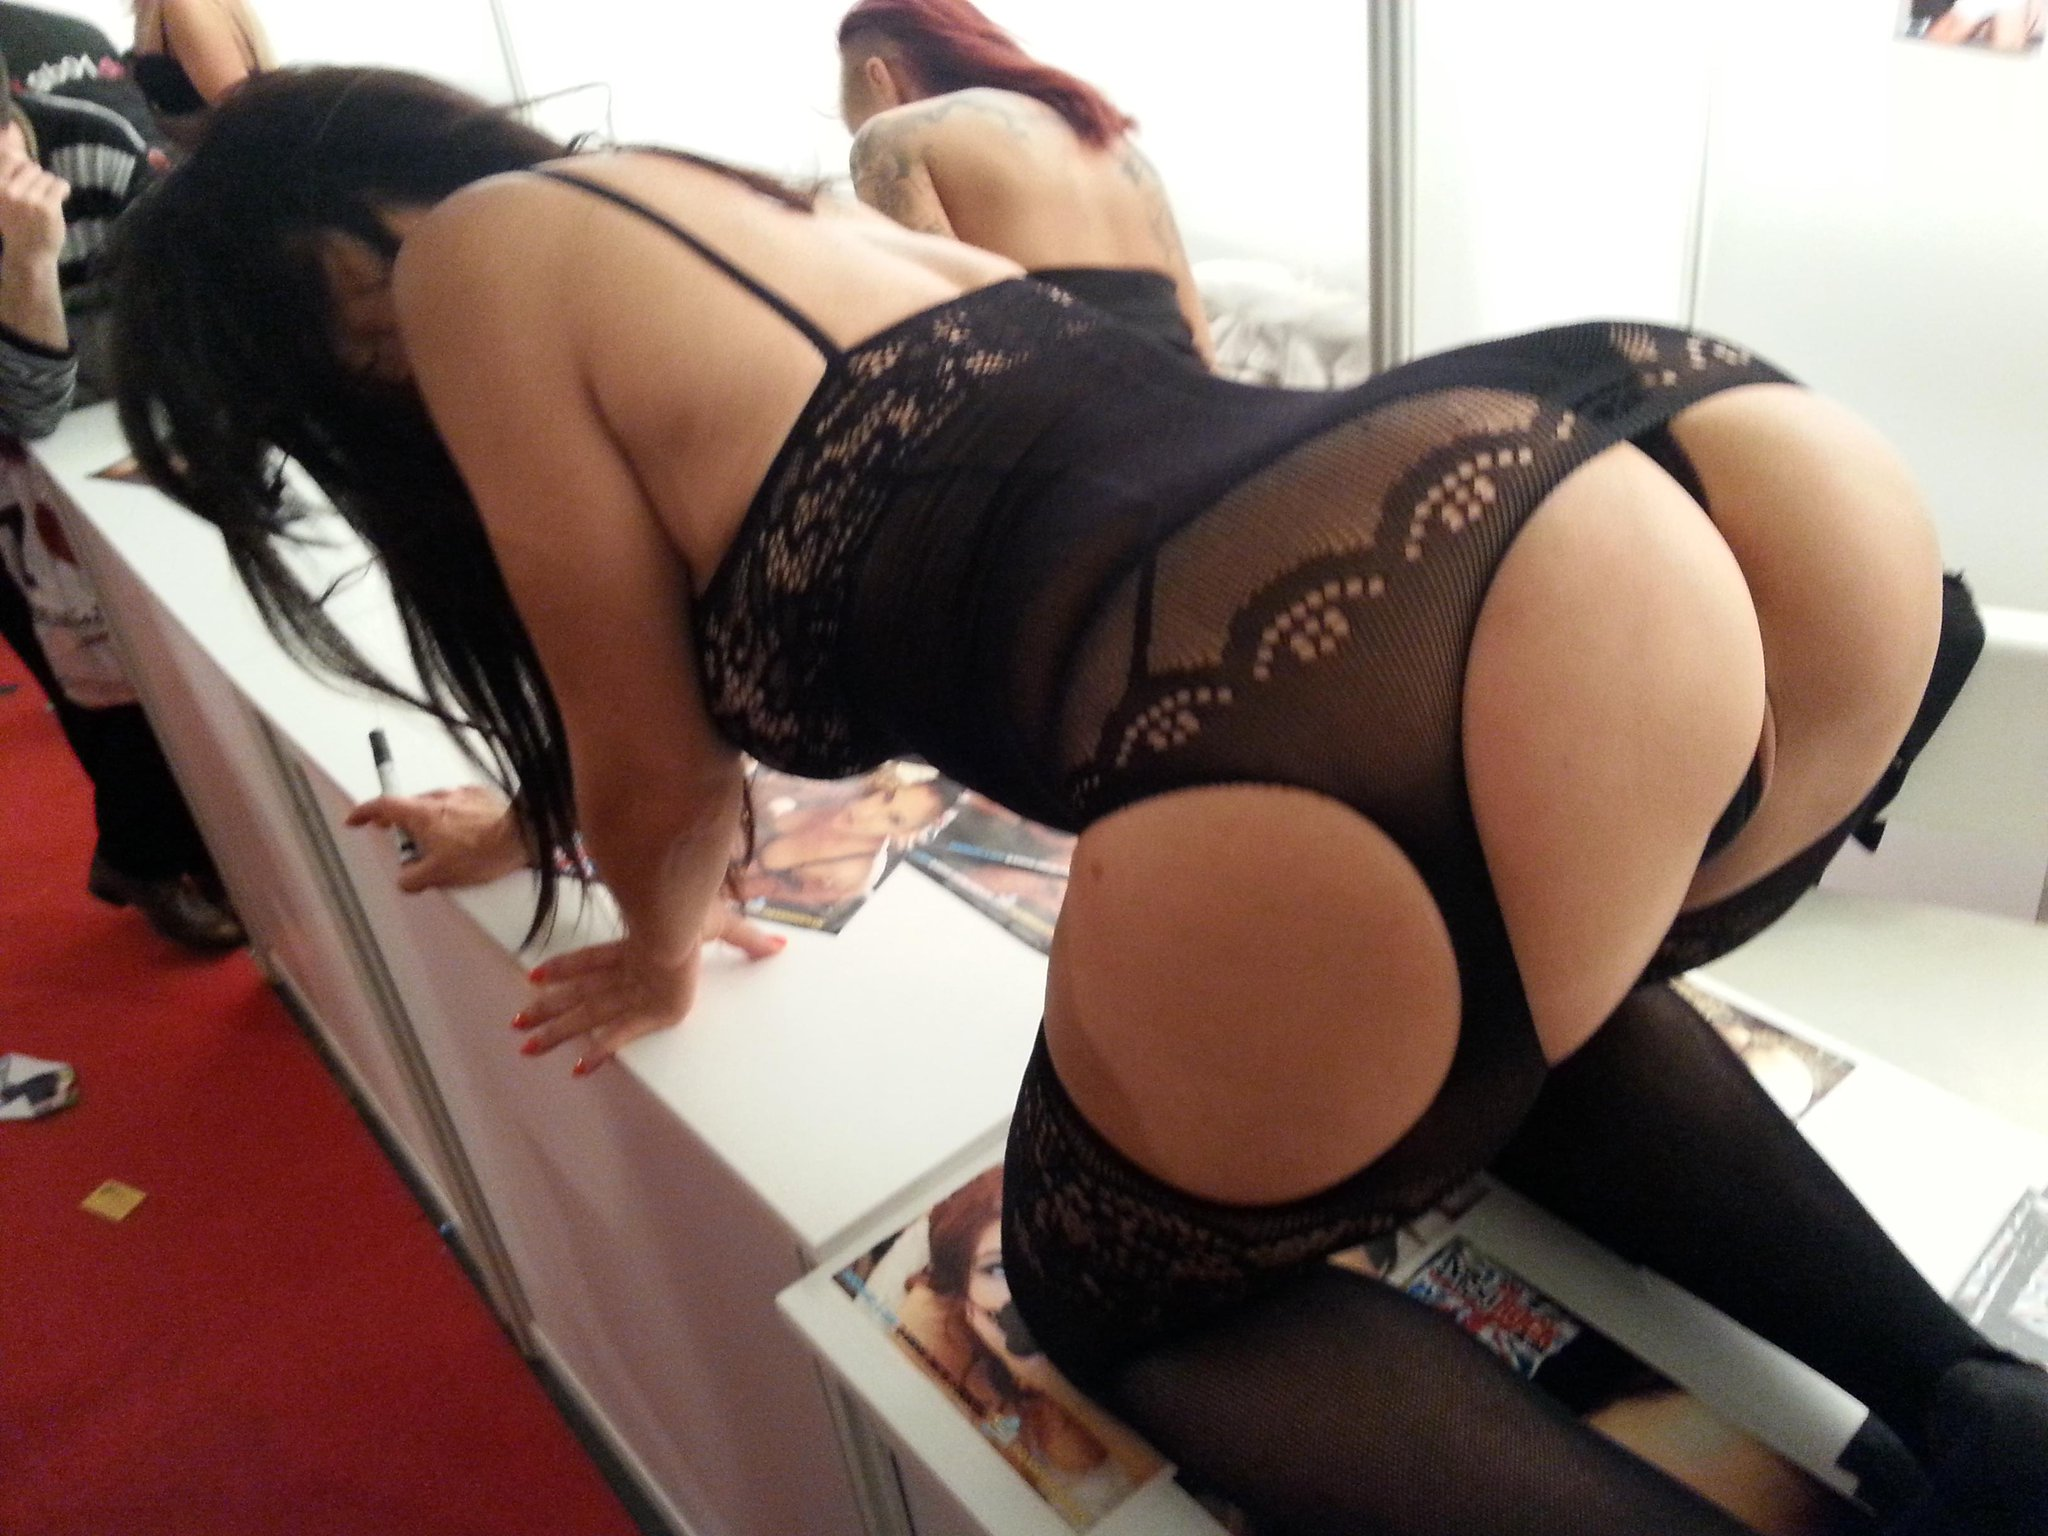 Here is a pic of my ass to say sorry for being angry XX LOL http://t.co/6LDDWN8sPi